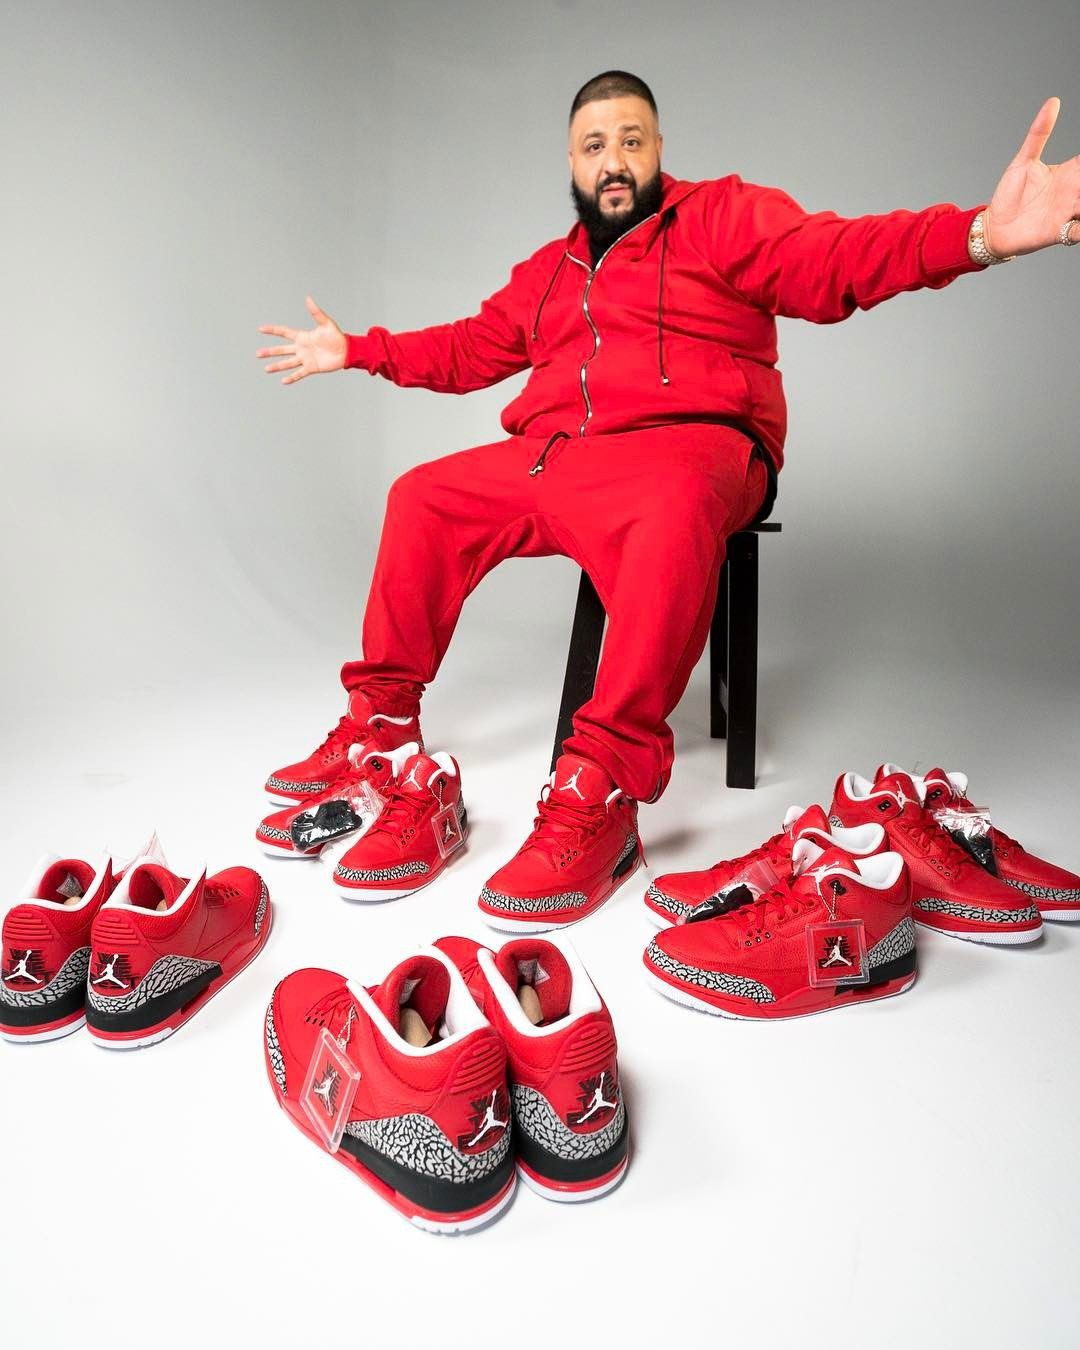 7cbf2ba16ac04d ..I think I don t like the elephant print on the toe DJ Khaled x Air Jordan  3 Retro  Grateful  - EU Kicks  Sneaker Magazine